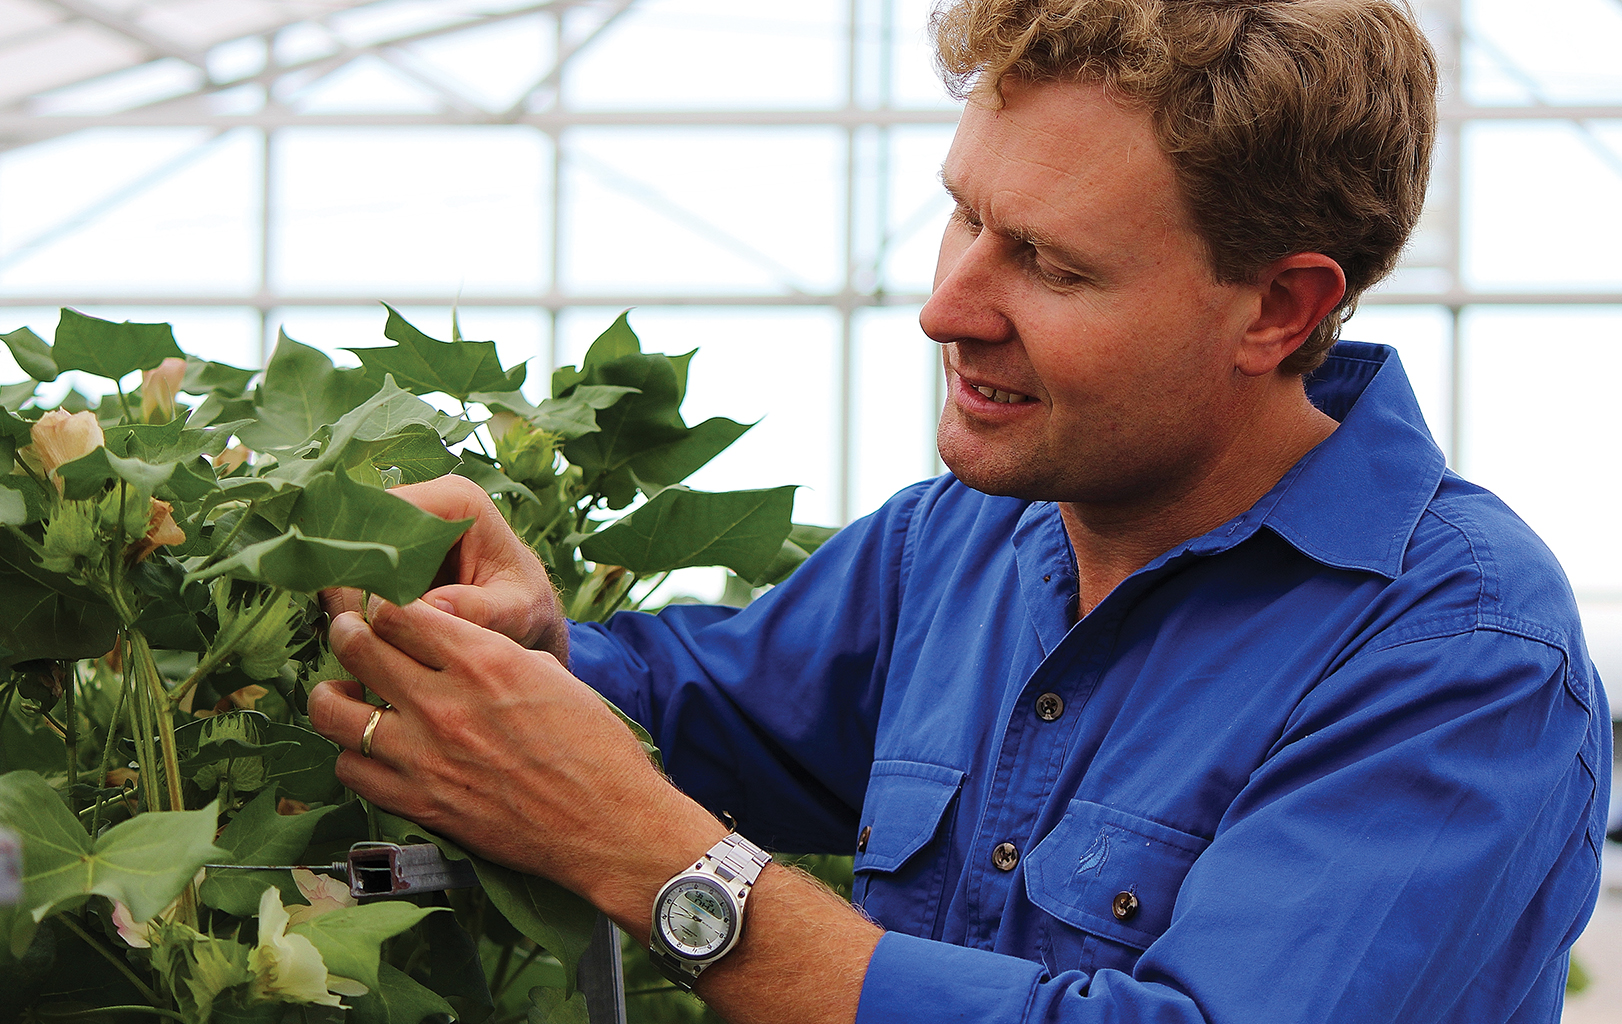 Scientist examining cotton plant in a glasshouse.